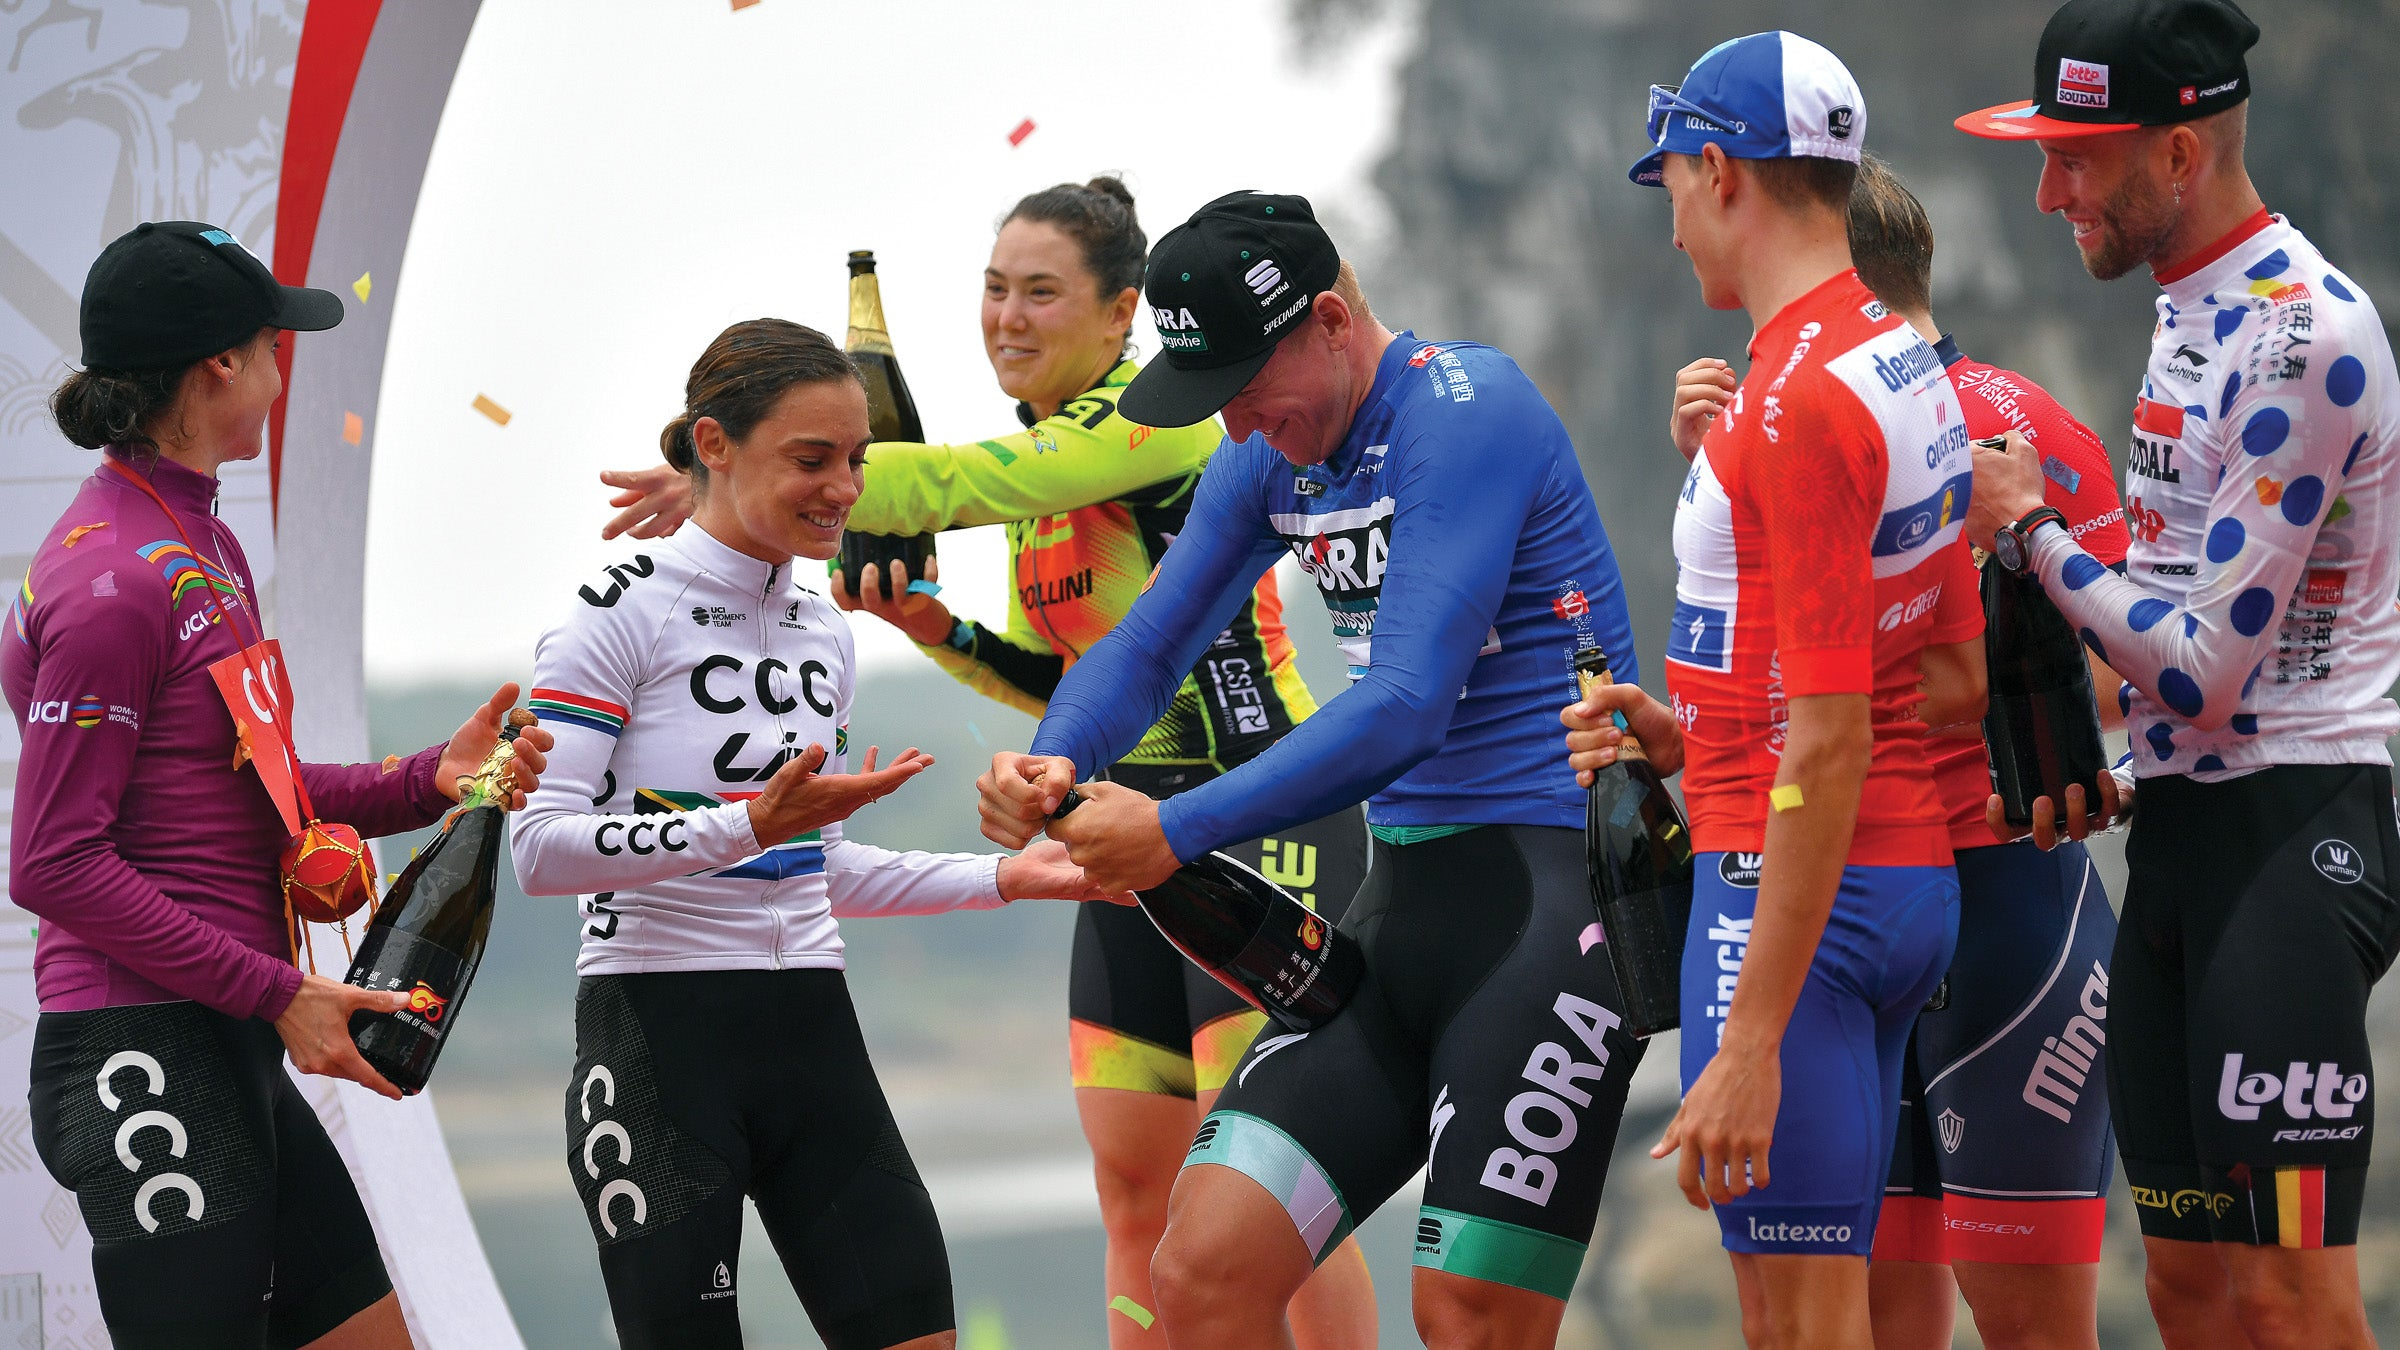 Marianne Vos, Ashleigh Moolman, and Chloe Hosking on the podium at the 2019 Tour of Guangxi in China.